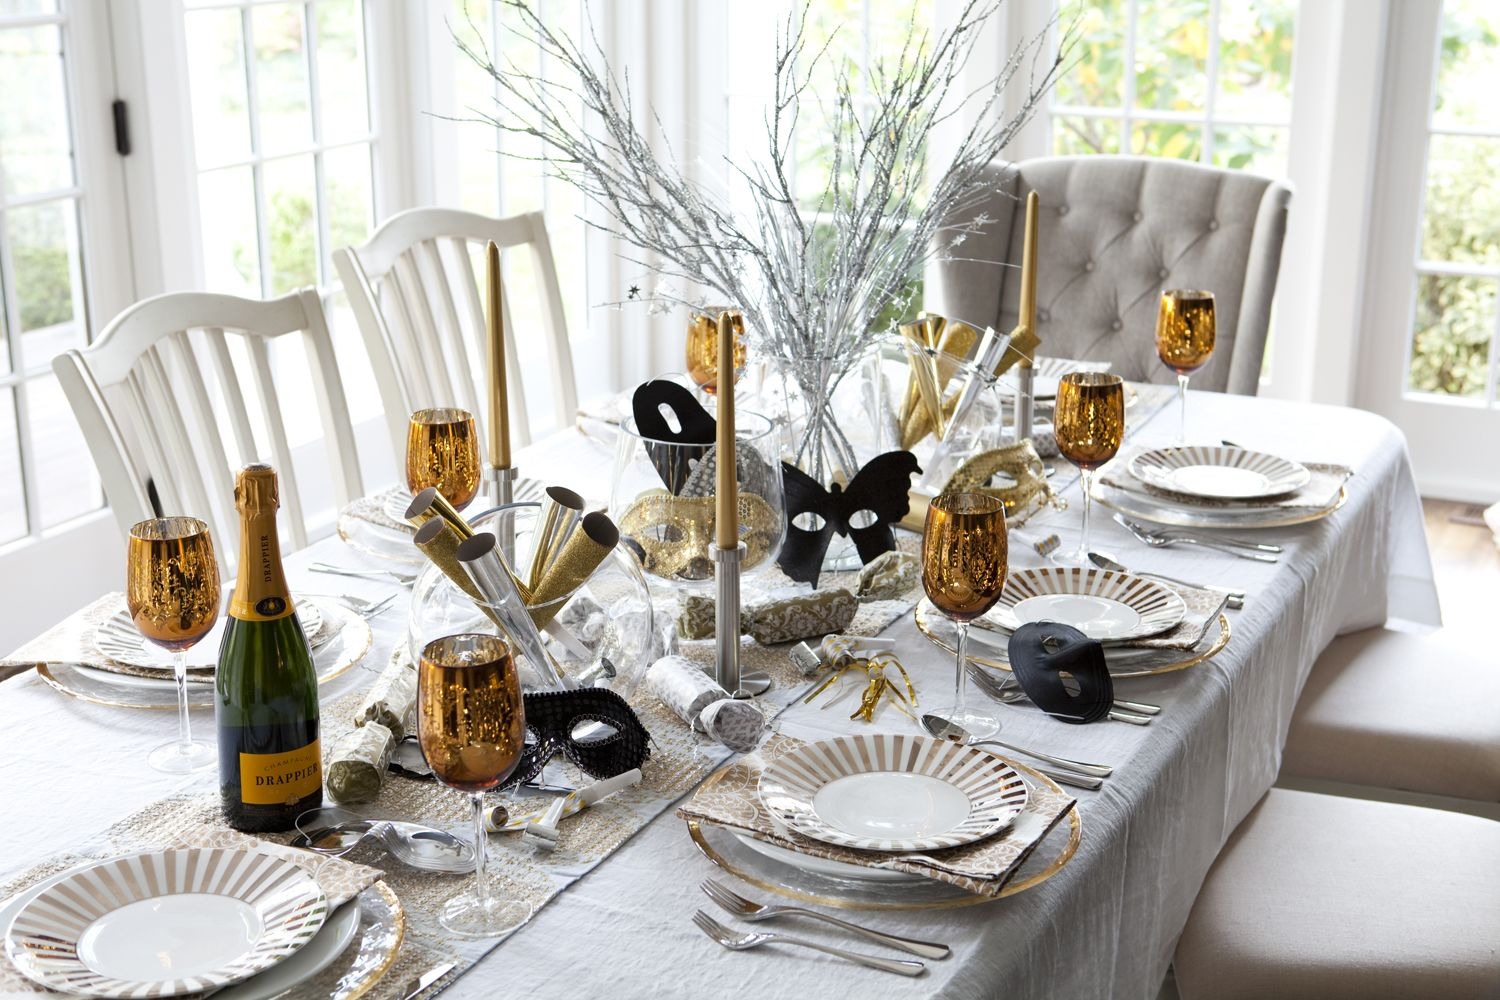 How to cover the New Years table